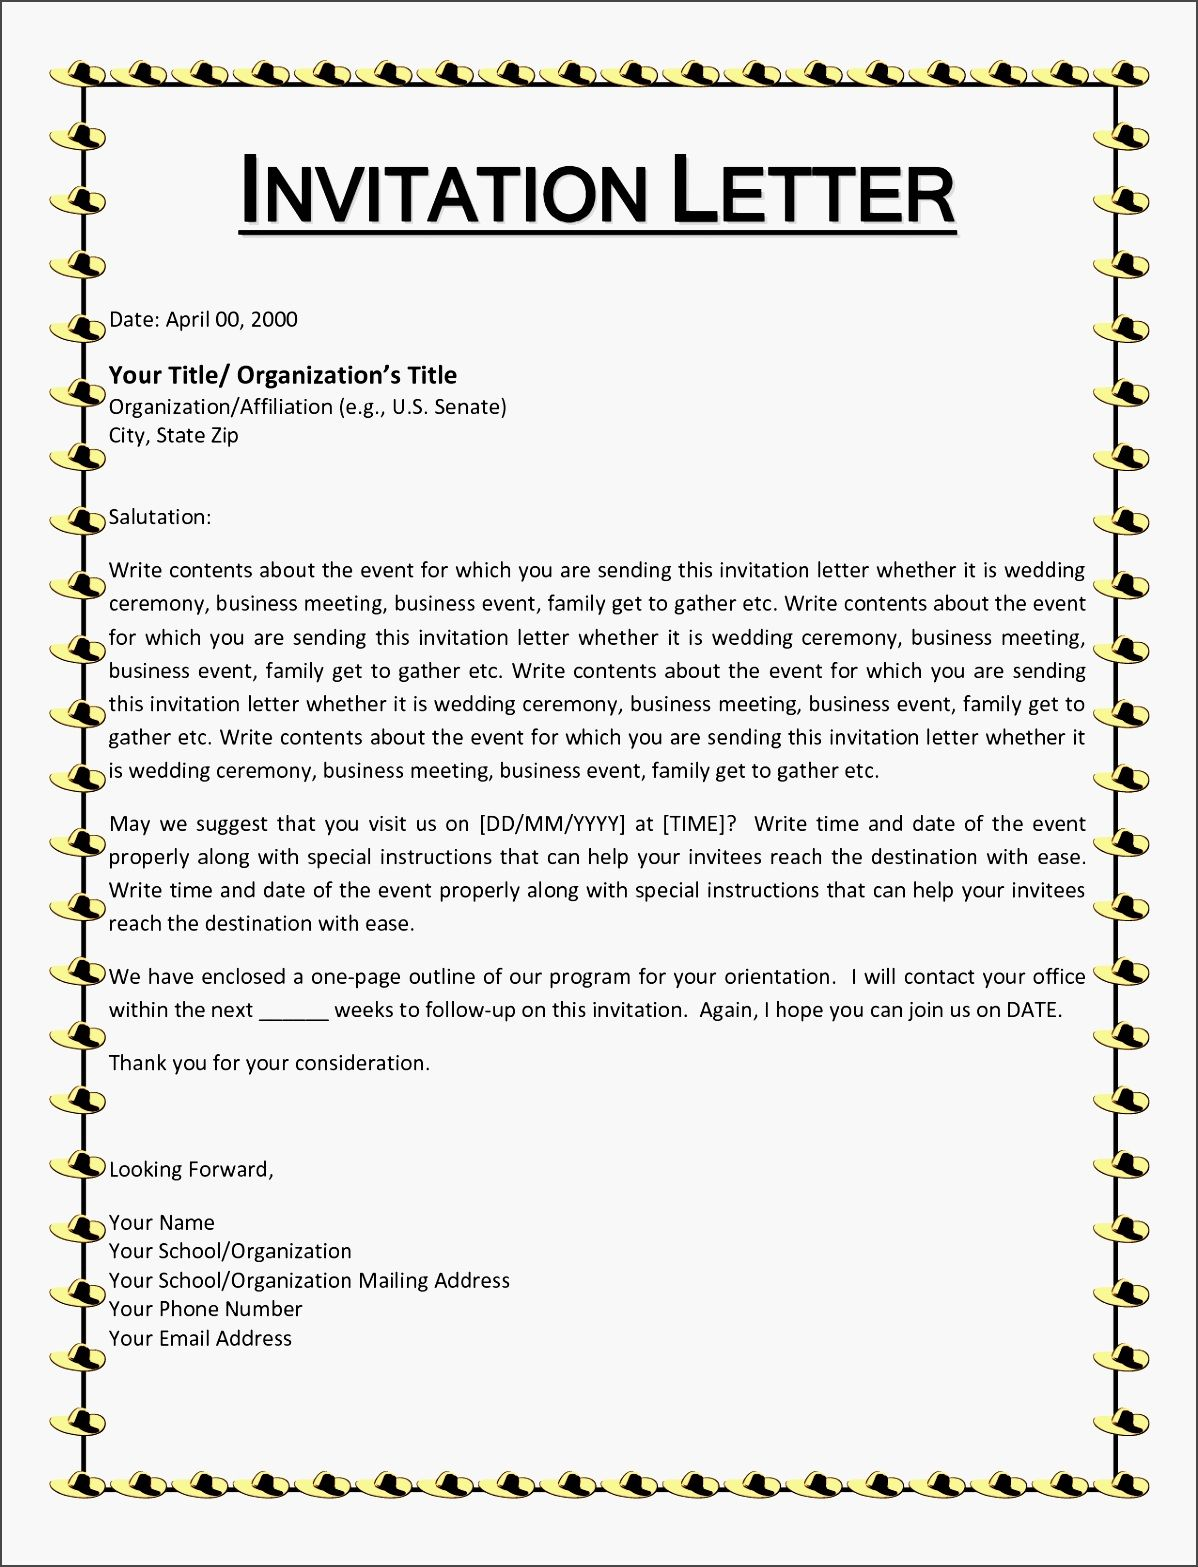 Invitation letter informal saevk beautiful wedding invitation letter invitation letter informal saevk beautiful wedding invitation letter informal wedding invitation letter thecheapjerseys Gallery